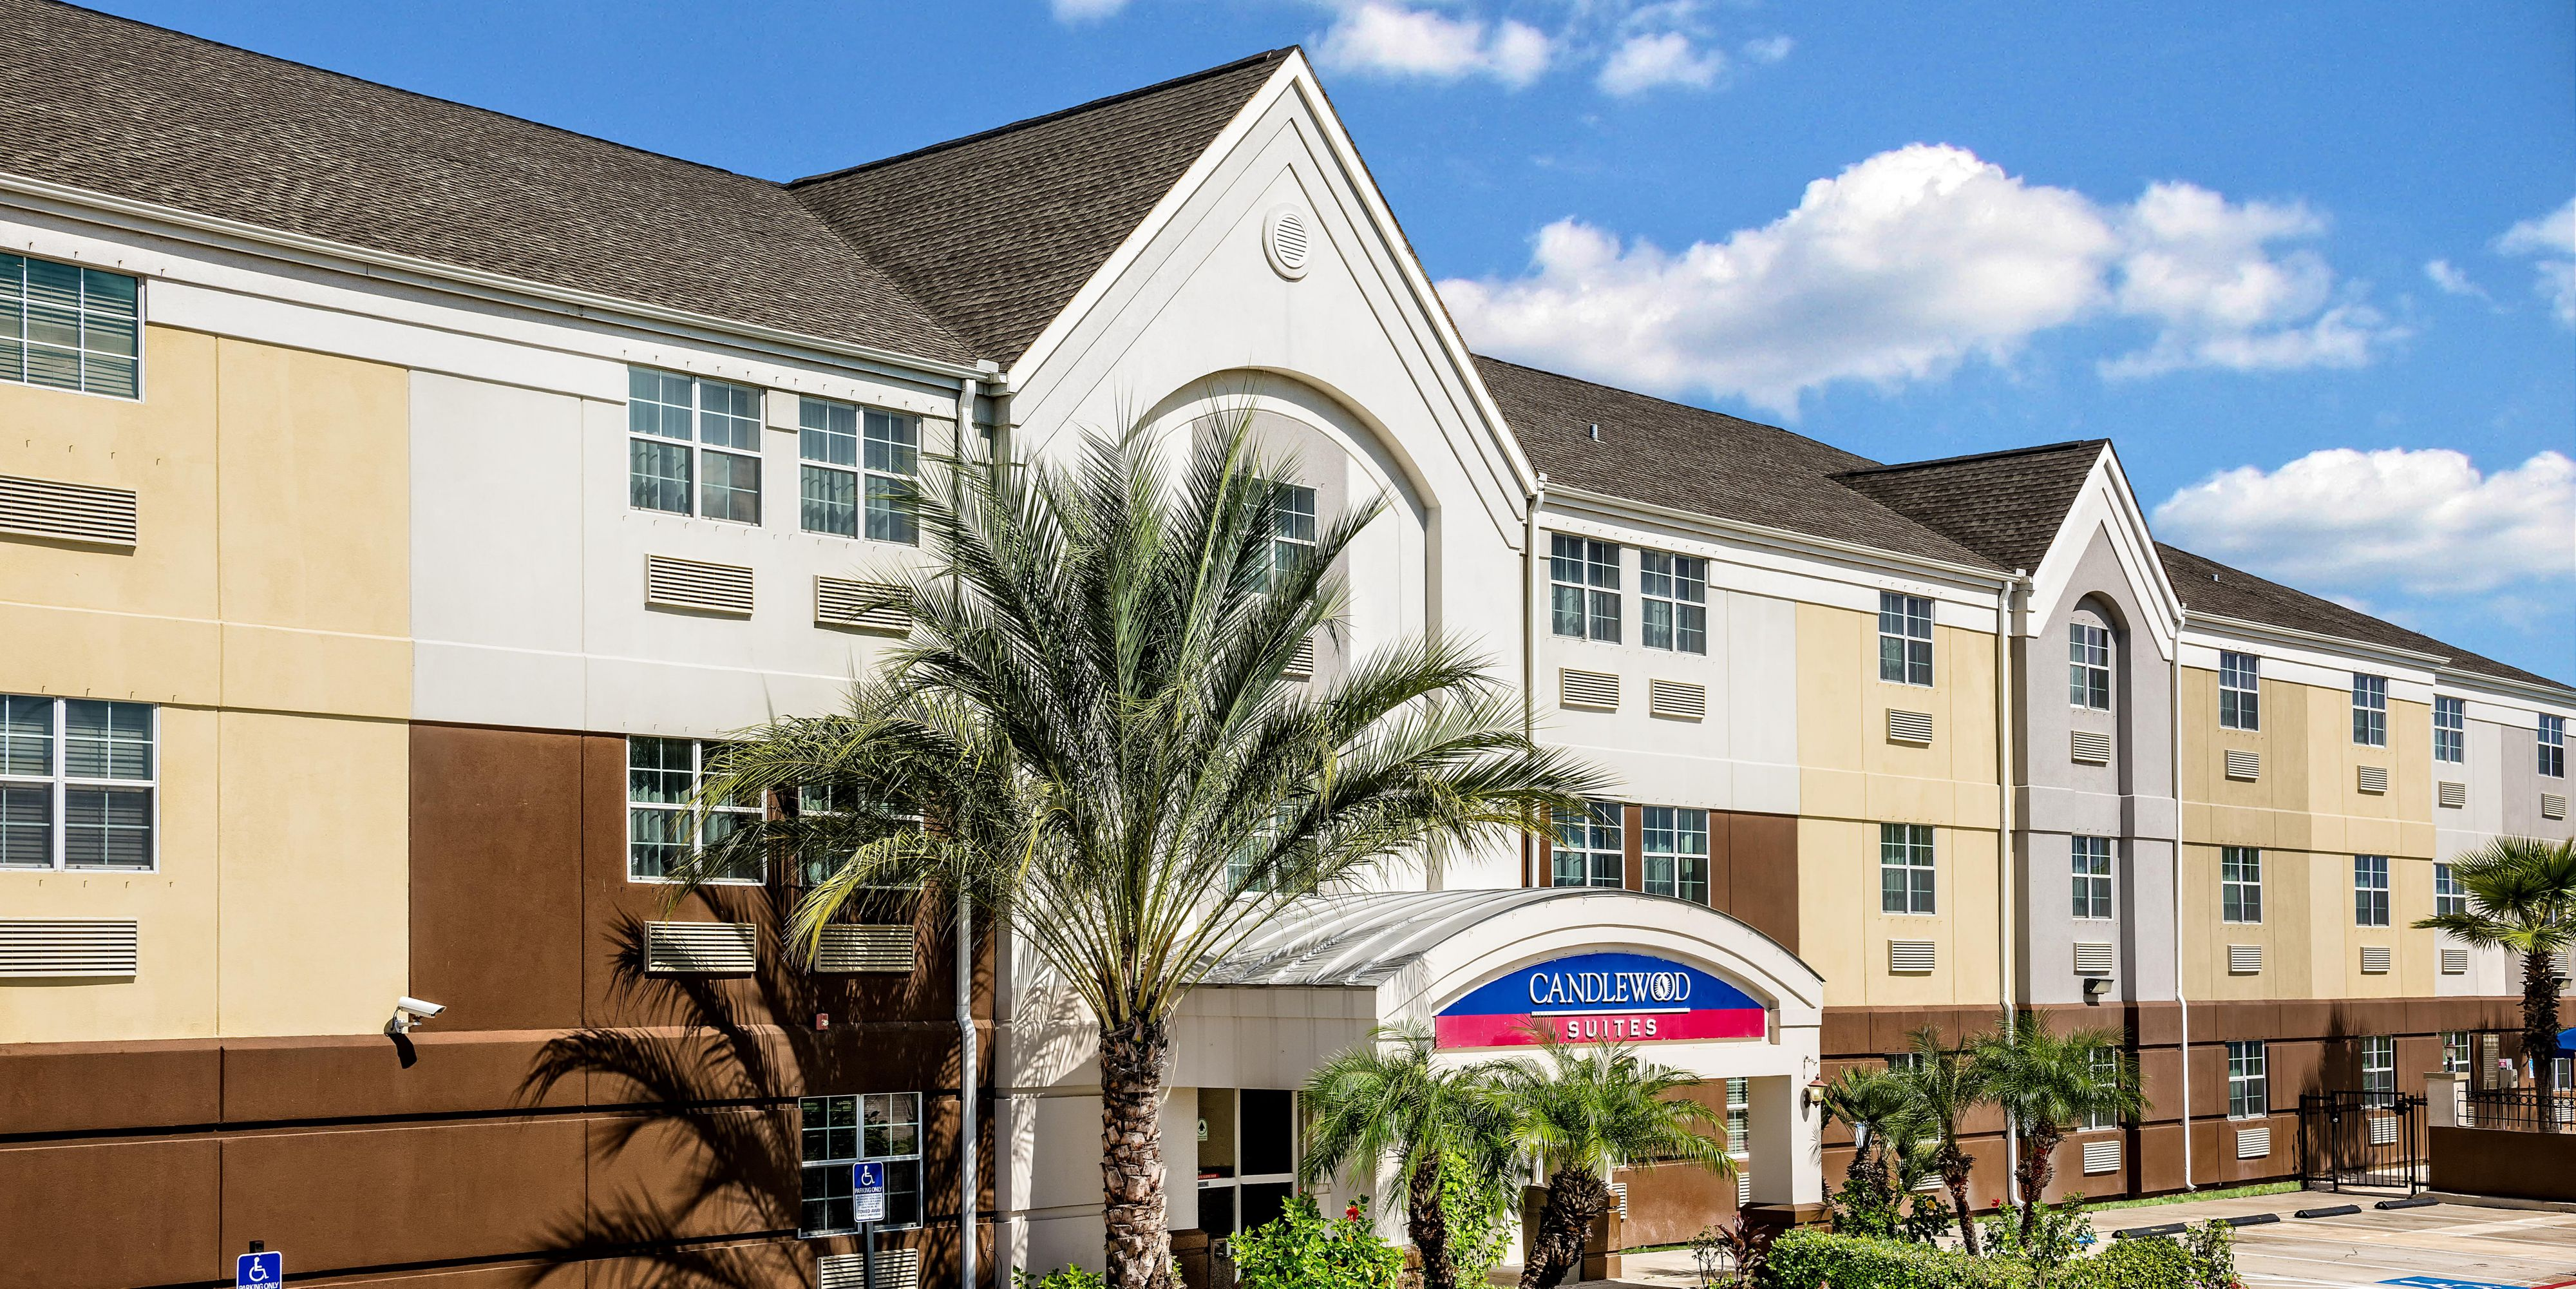 Galveston Hotels Candlewood Suites Galveston Extended Stay Hotel